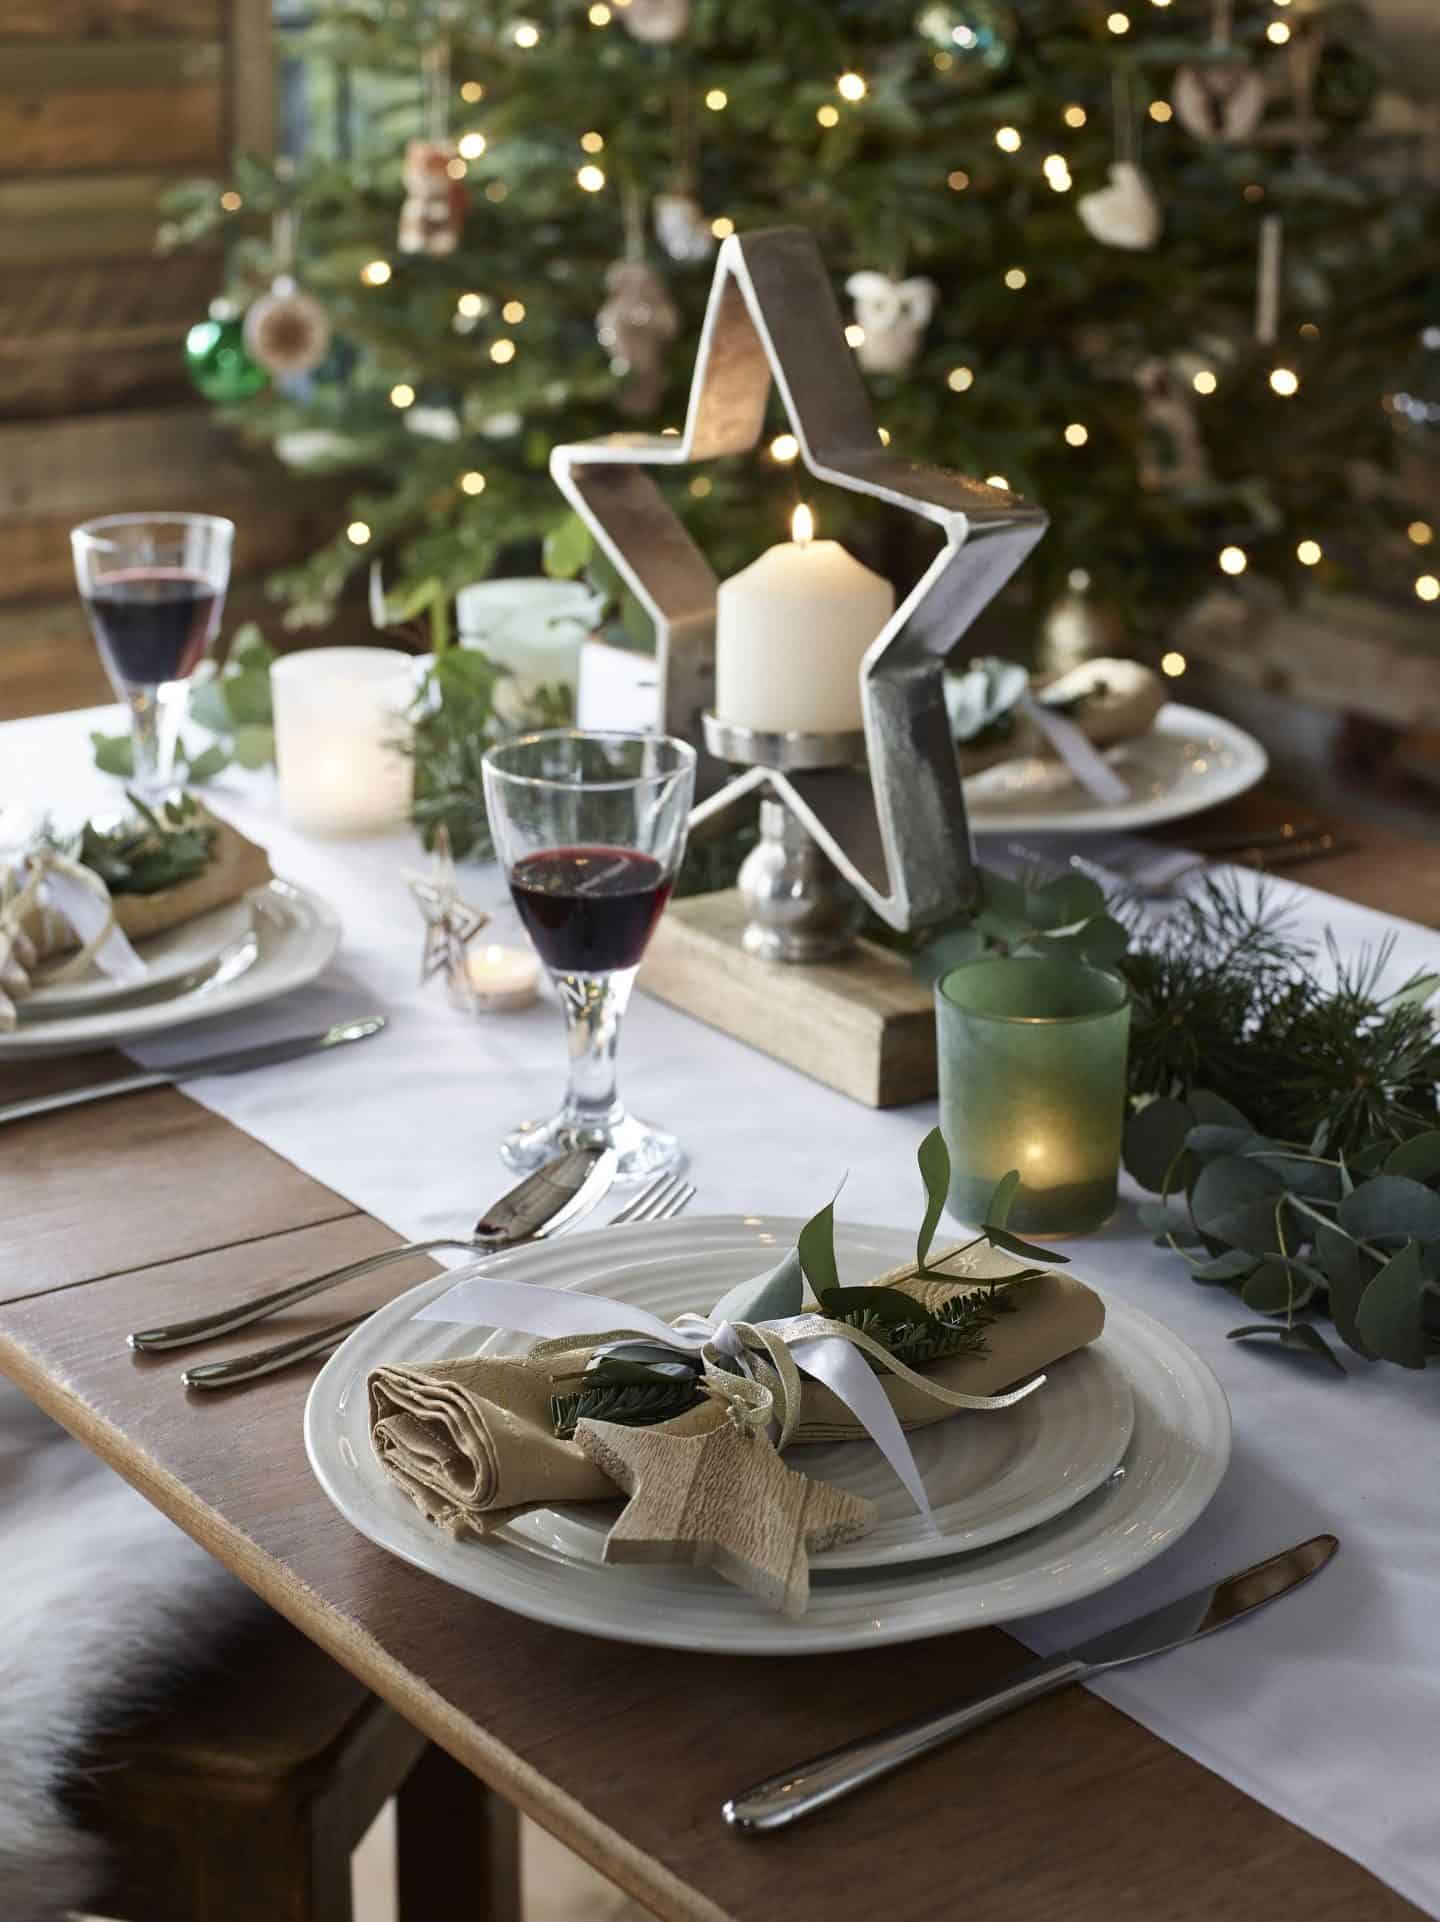 Dobbies Enchanted Garden Chistmas Trend Tablescape featuring natural and organic materials and textures